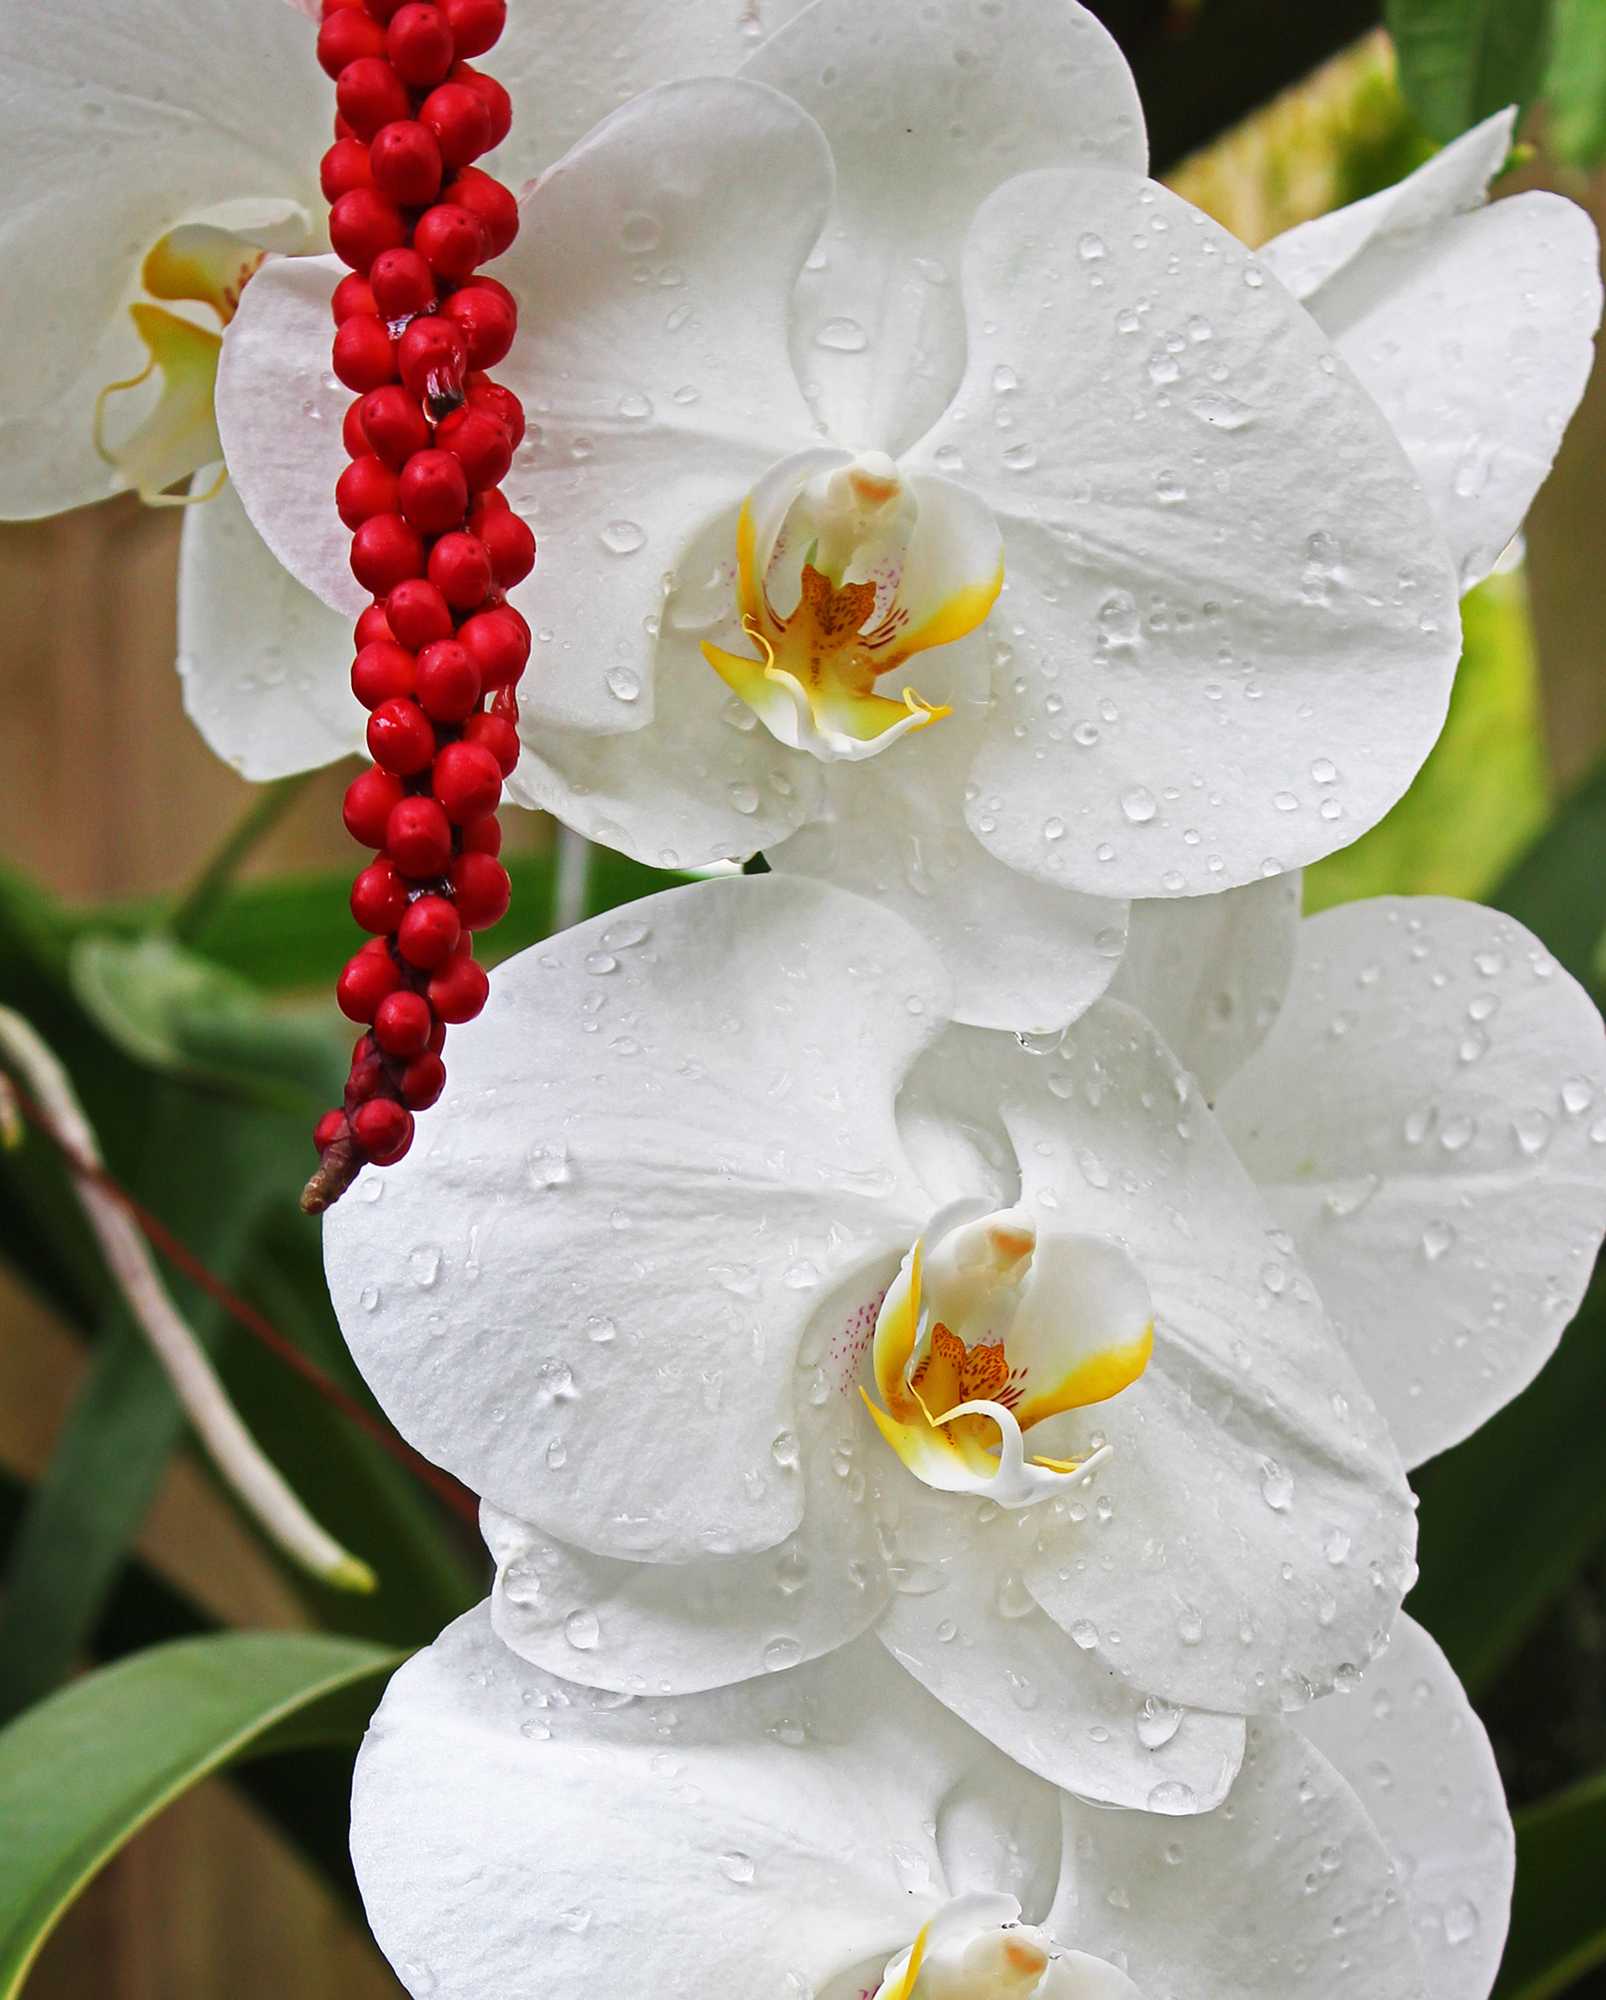 Red berries hanging next to  pure white orchid- type flowers